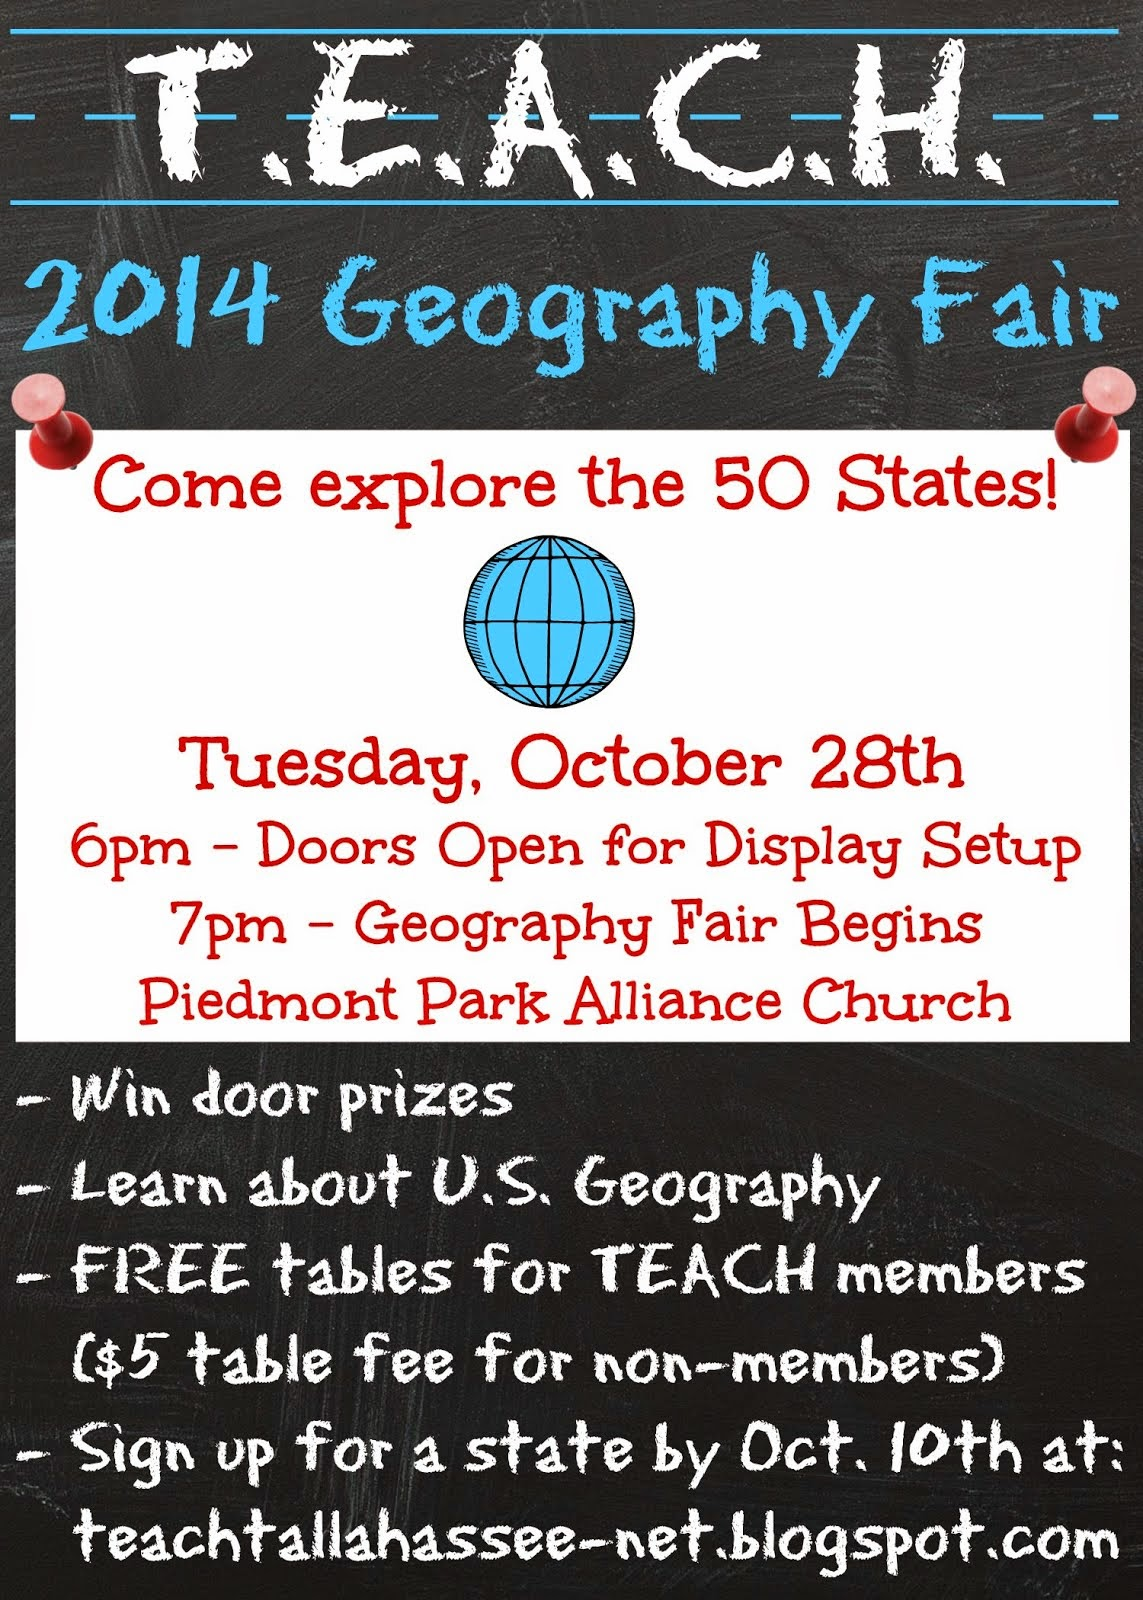 TEACH 2014 Geography Fair Info (Click Here)